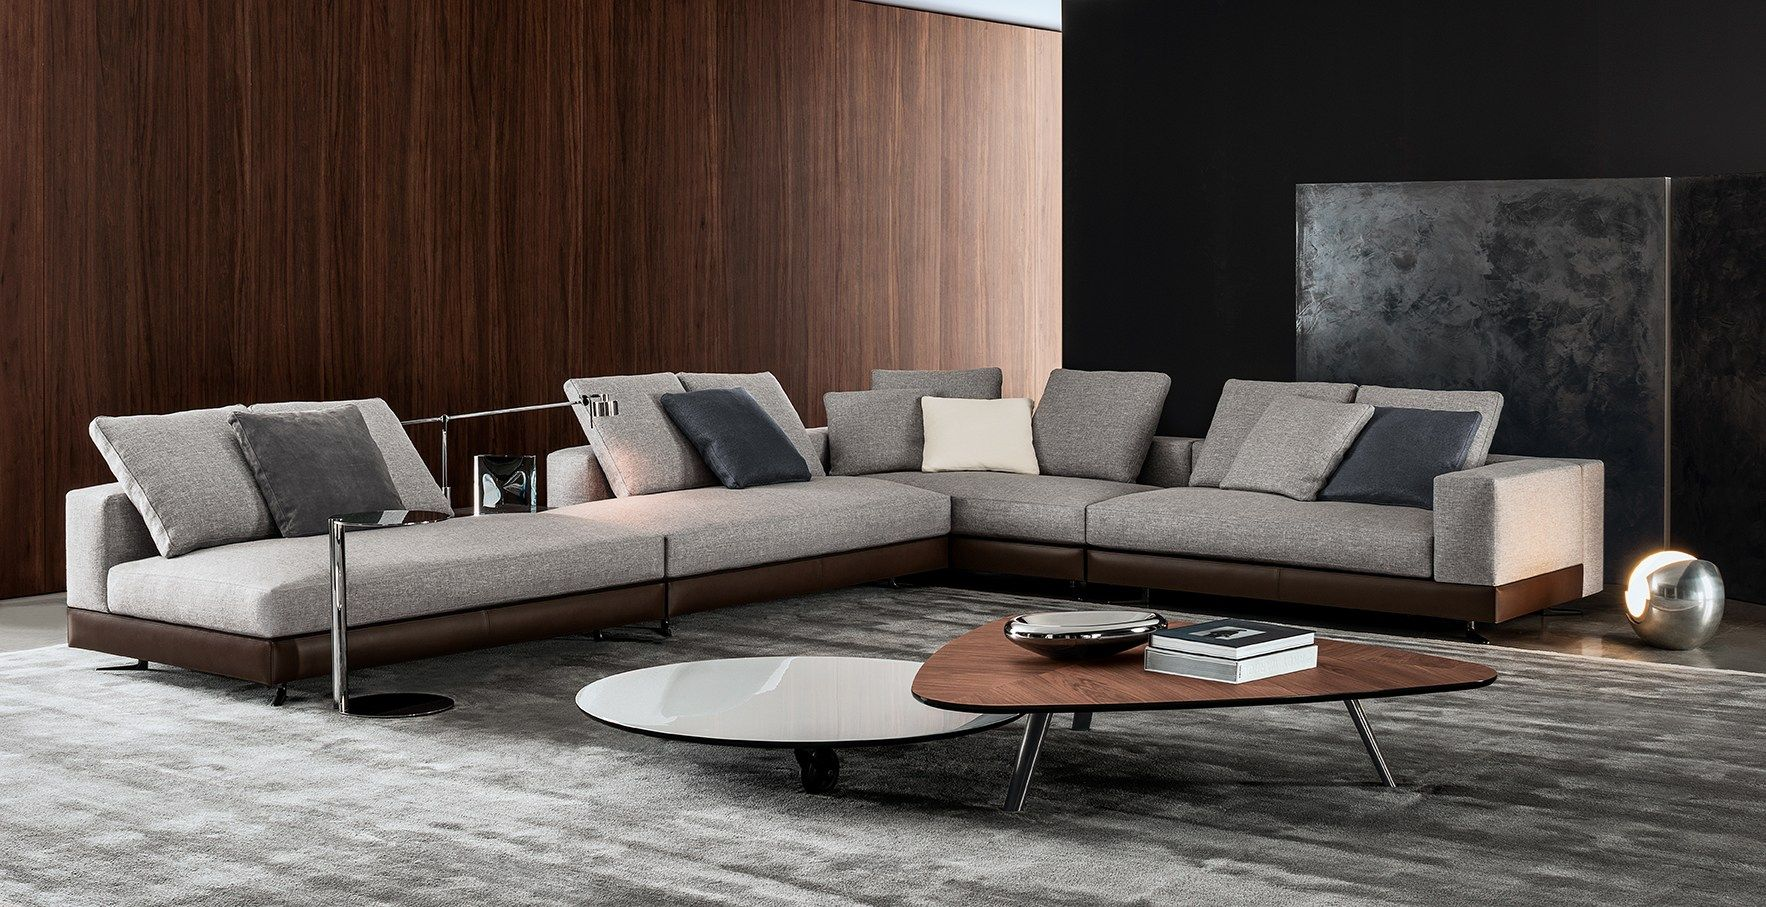 White Seating System By Rodolfo Dordoni For Minotti